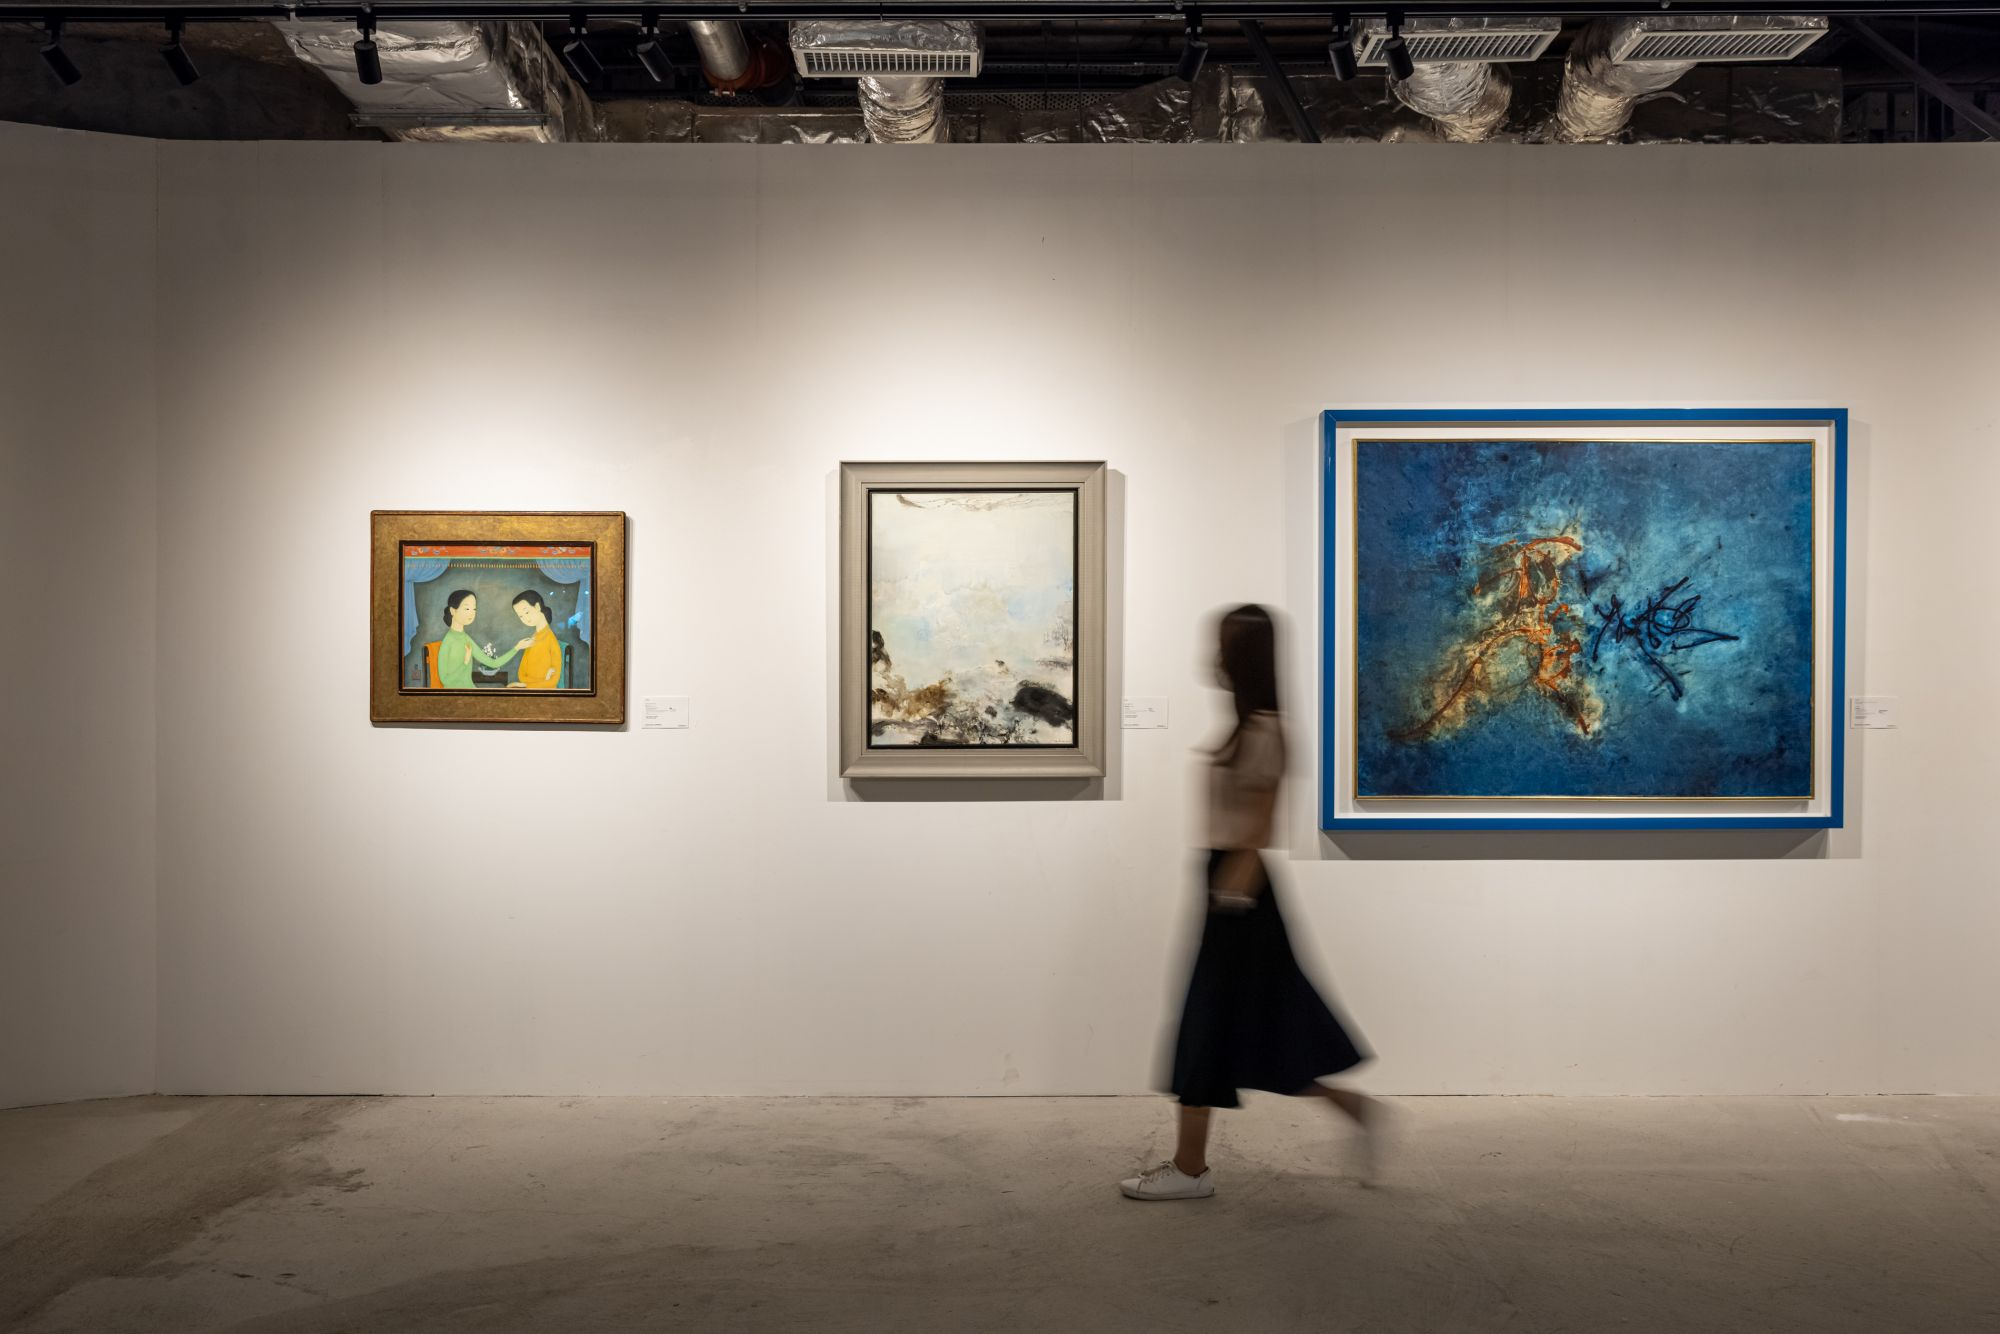 K11 Musea x Sotheby's Team Up For 2021 Spring Auctions Preview Of Over 30 Popular Artworks